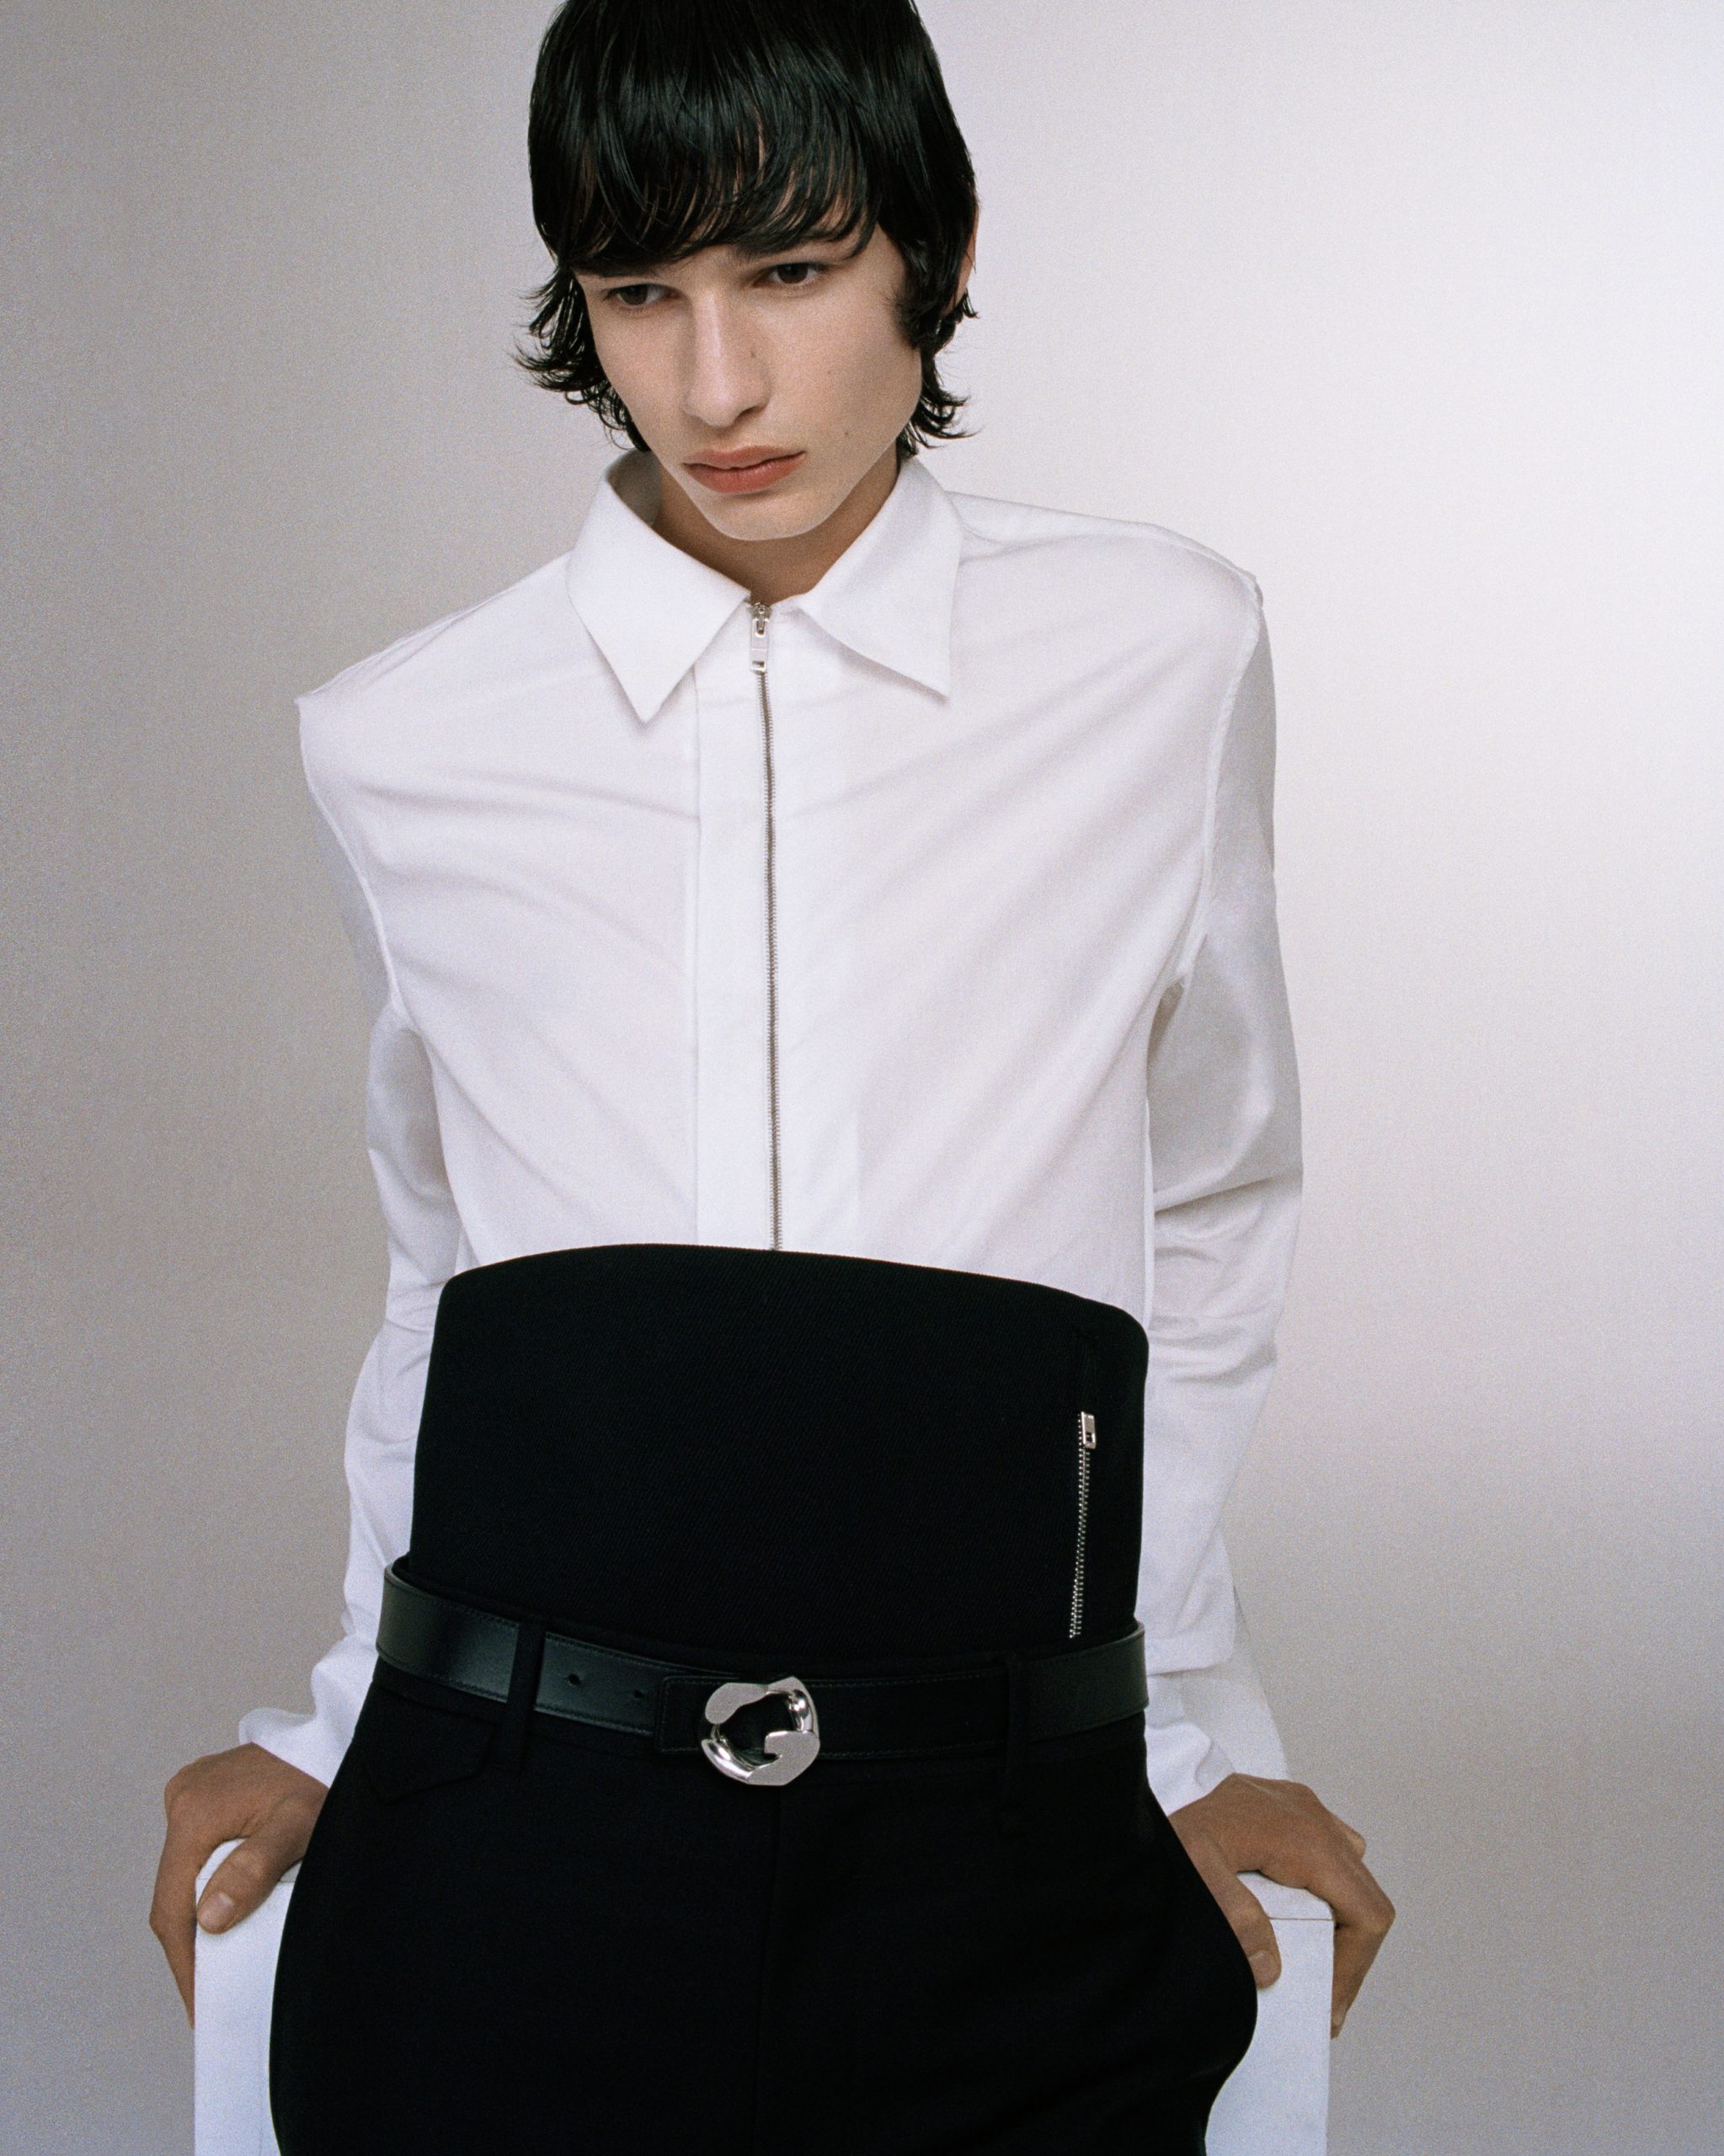 """Givenchy Launches """"Teaser"""" Capsule Collection"""